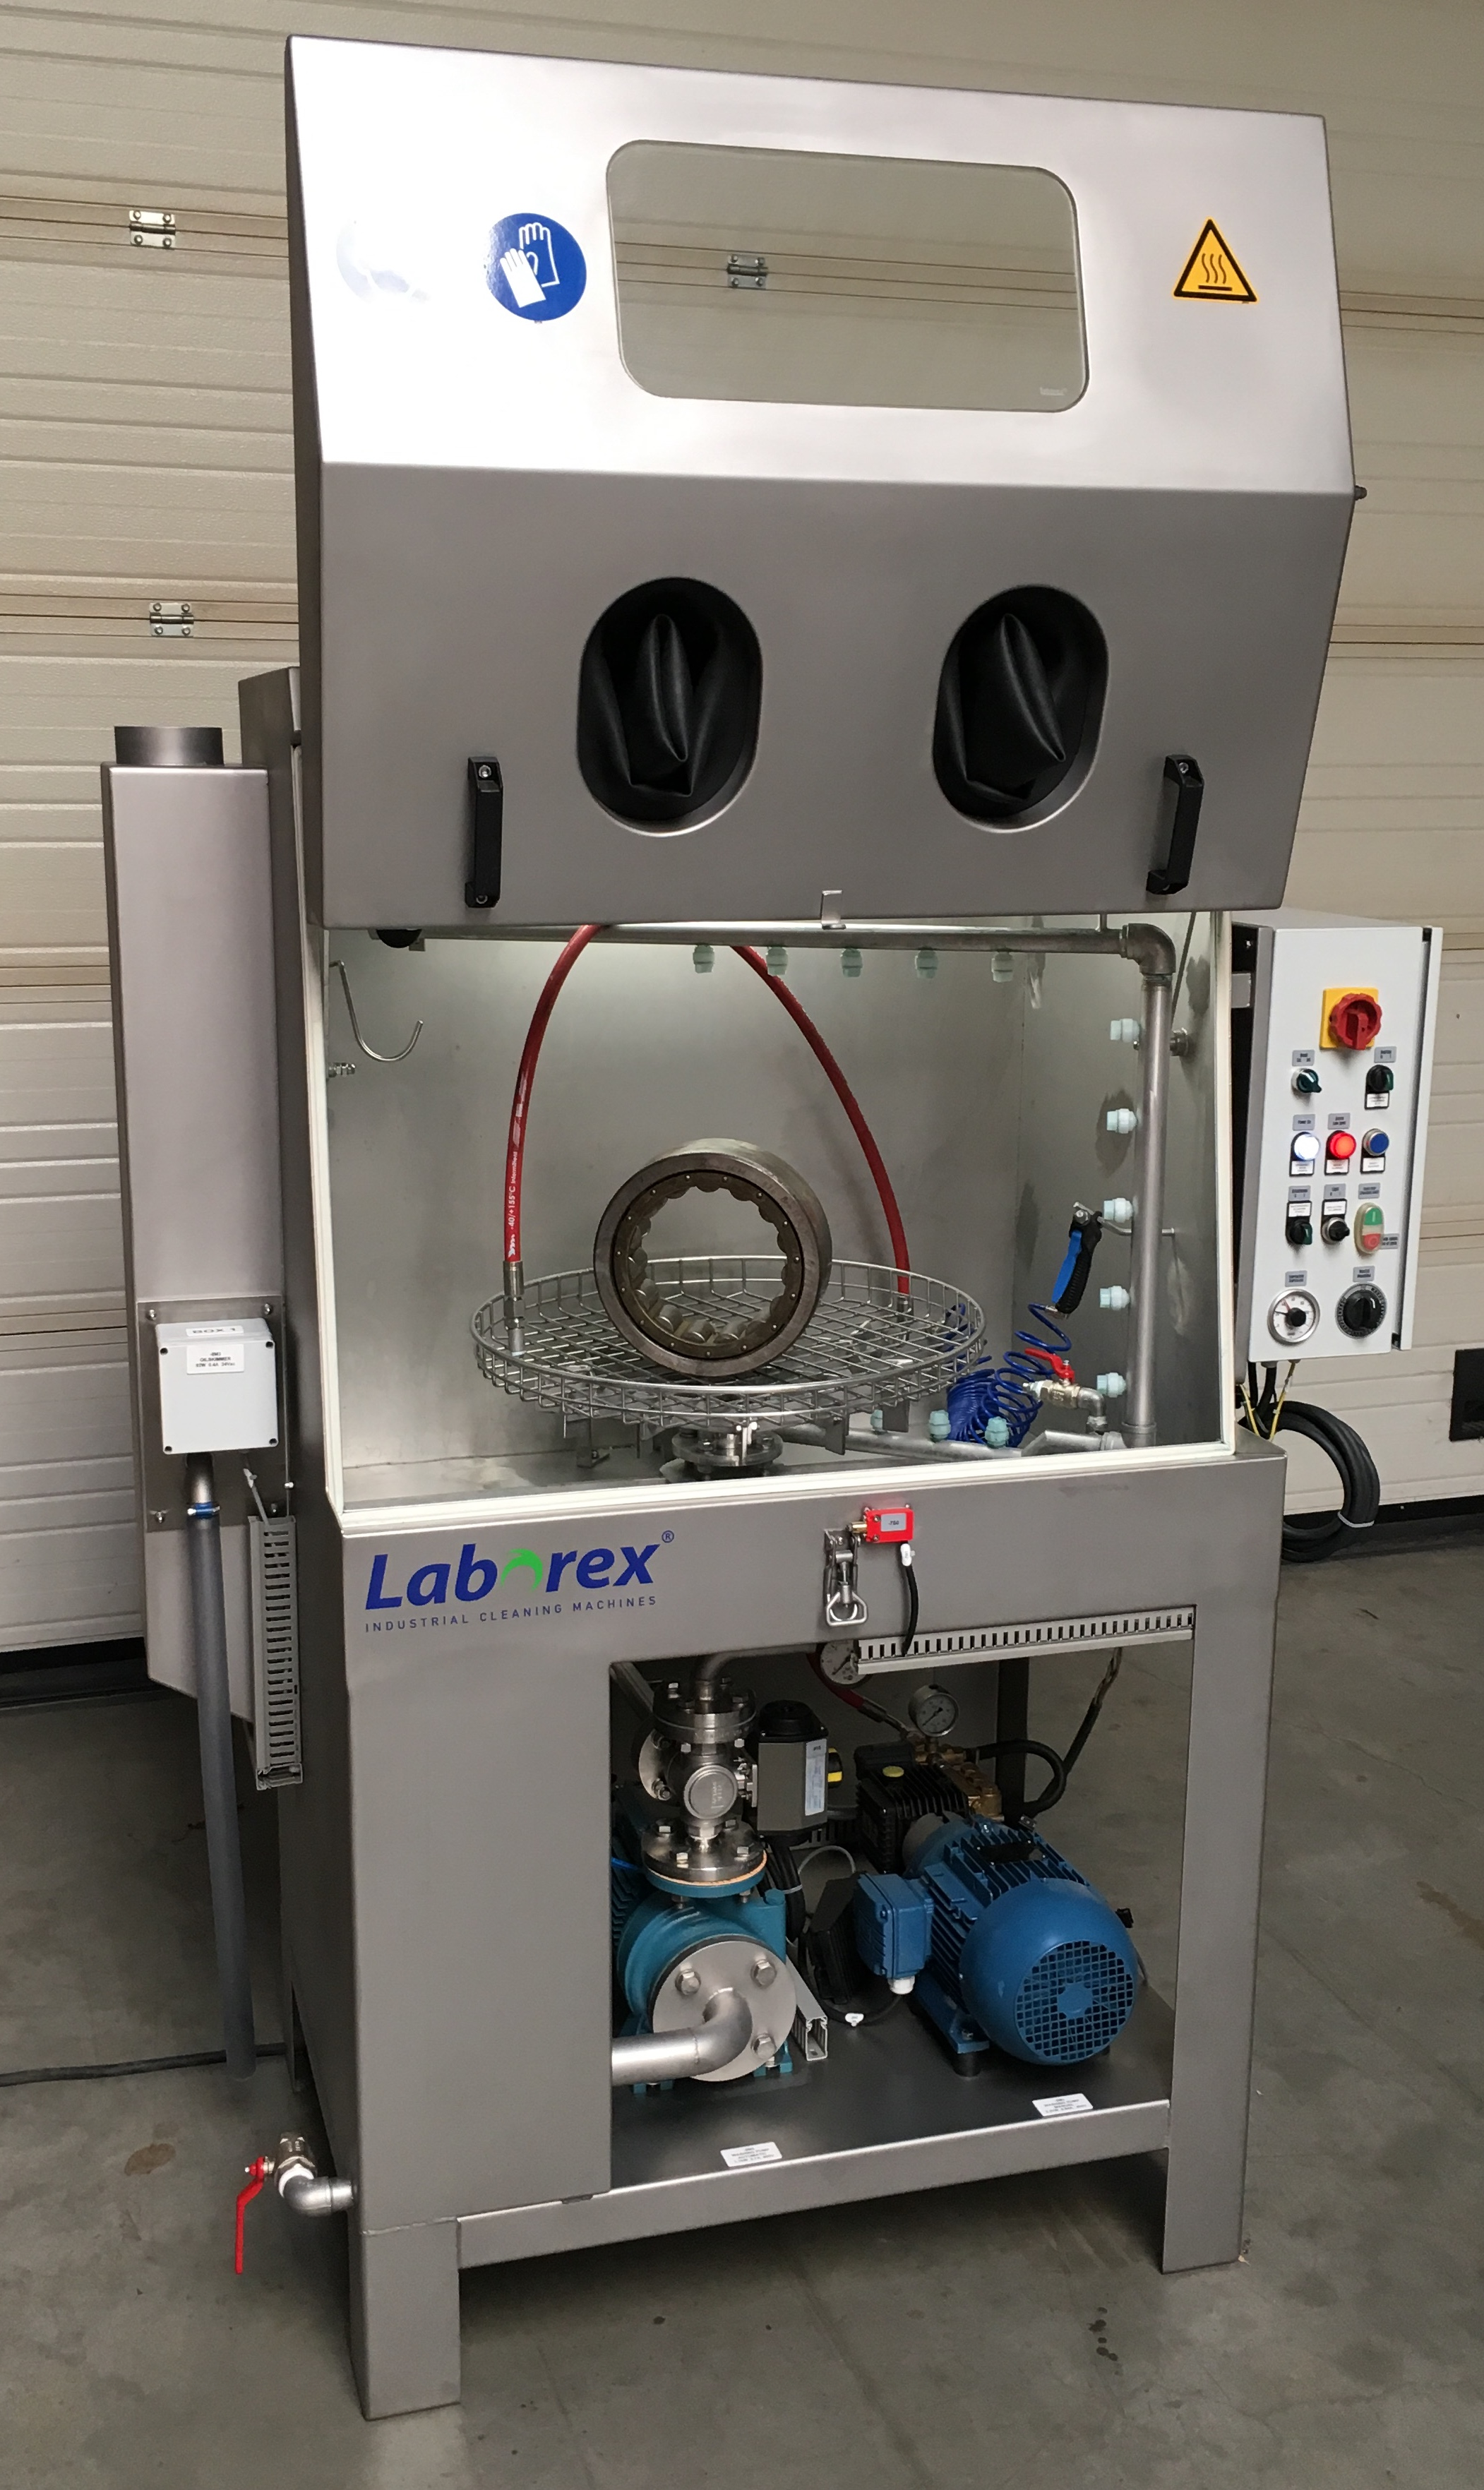 High Pressure Cleaning Cabinets Laborex